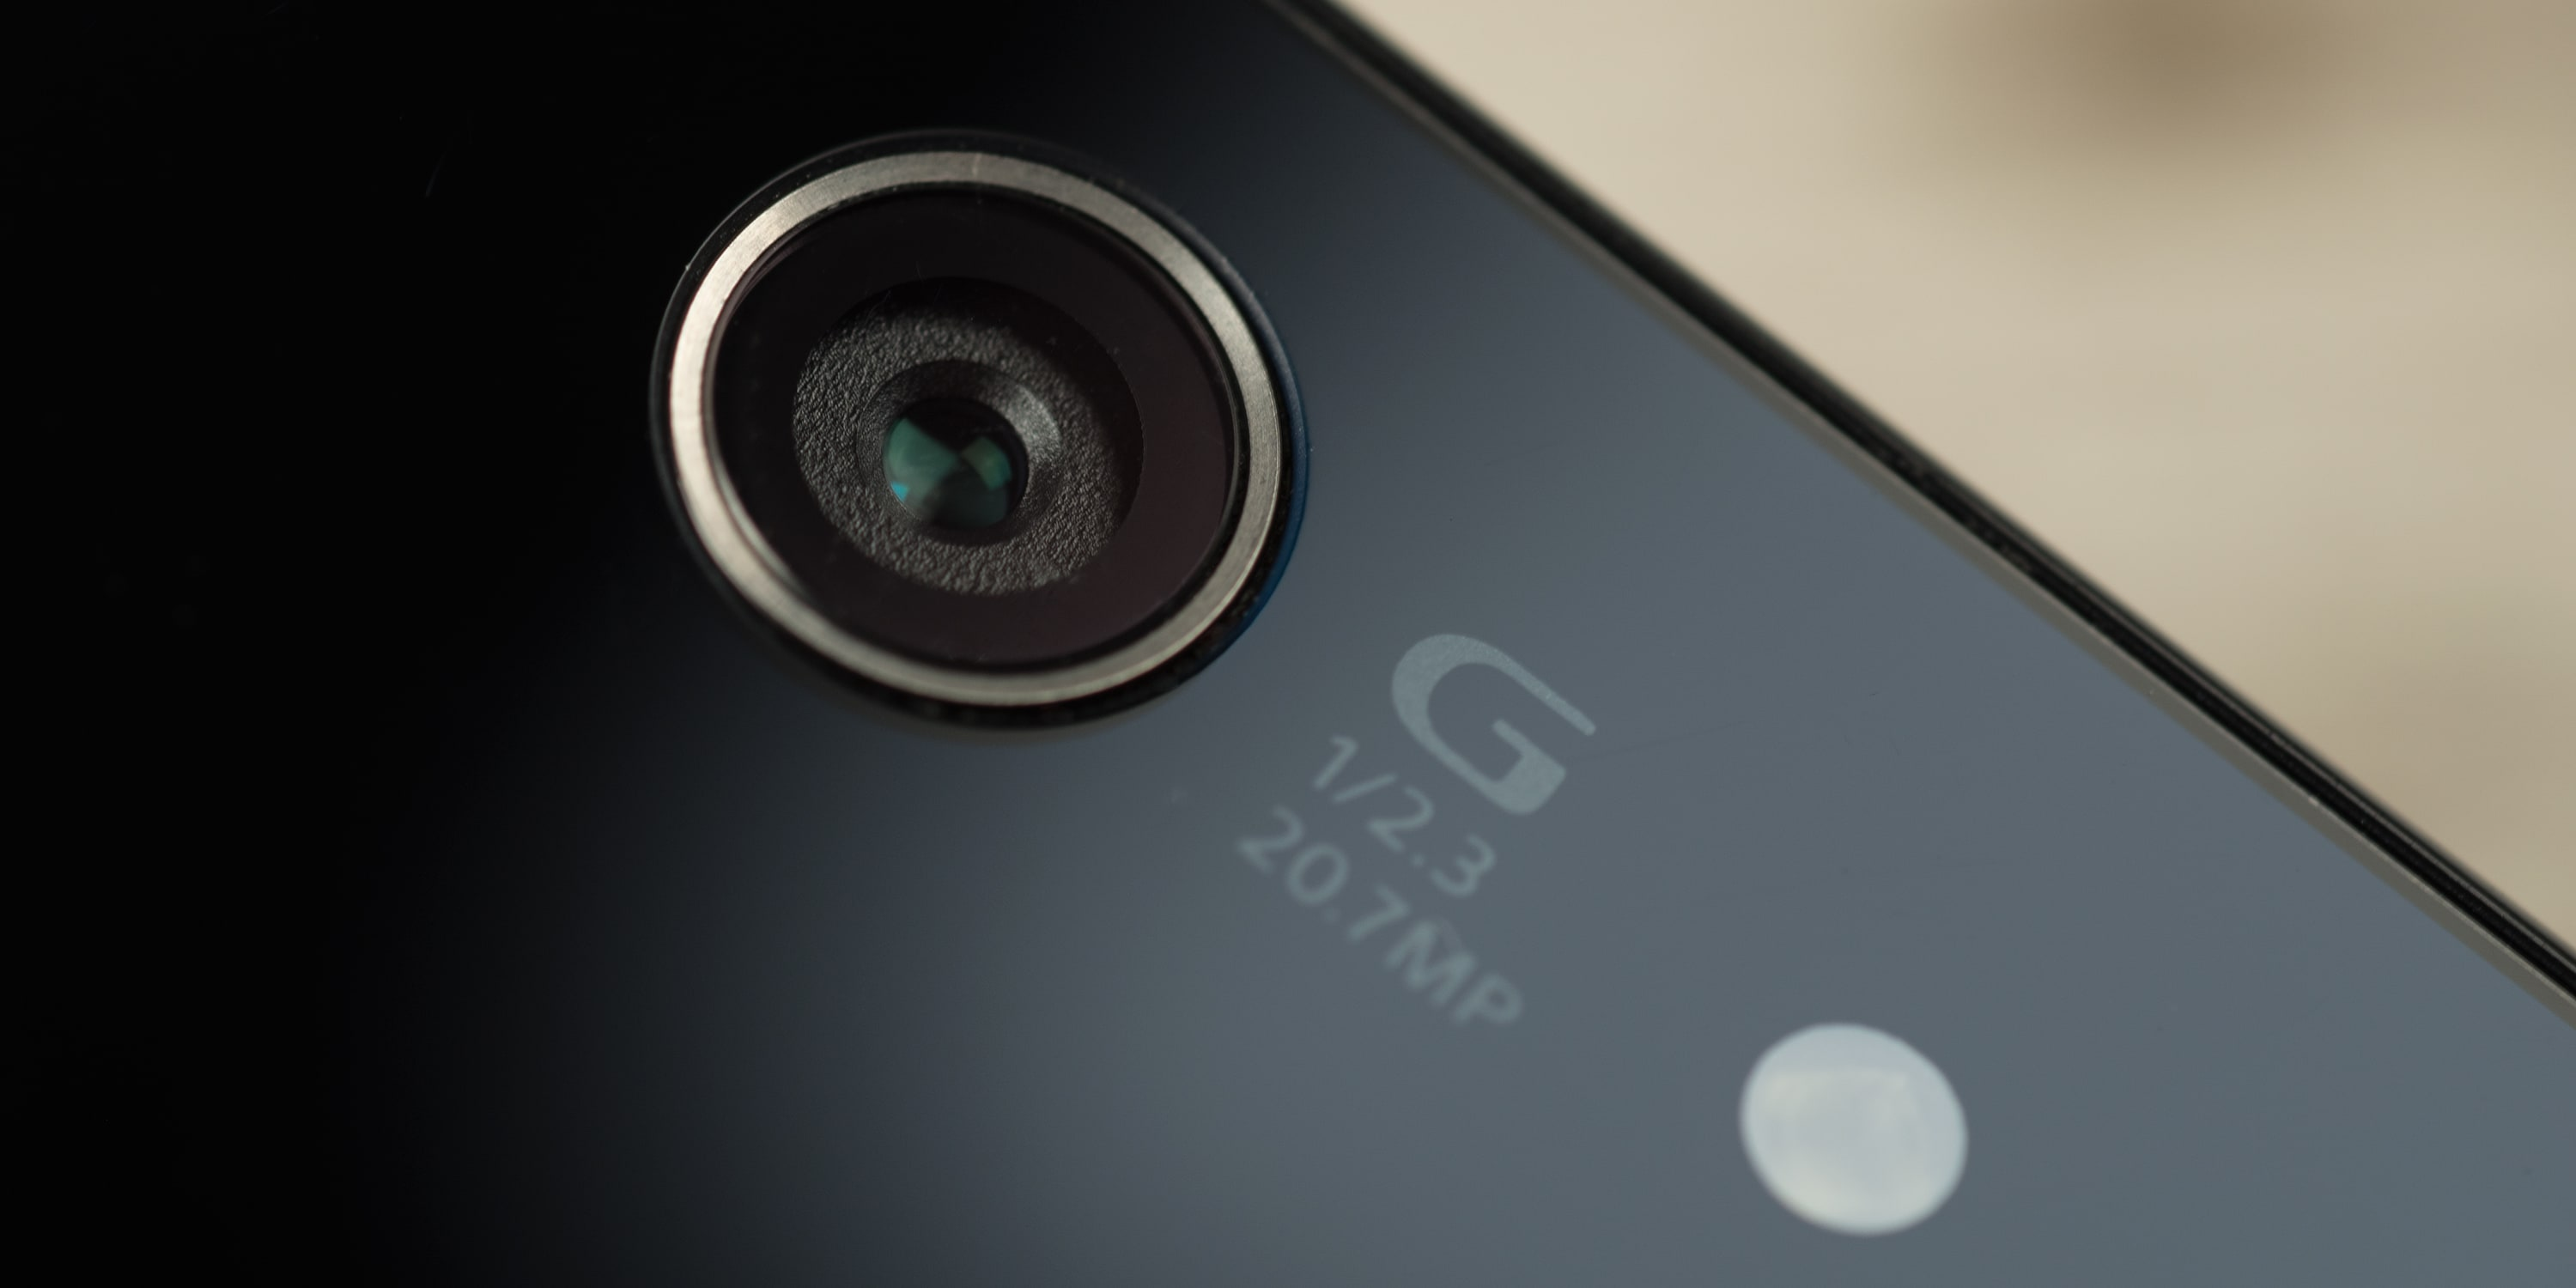 A photograph of the Sony Xperia Z3 Compact's camera.